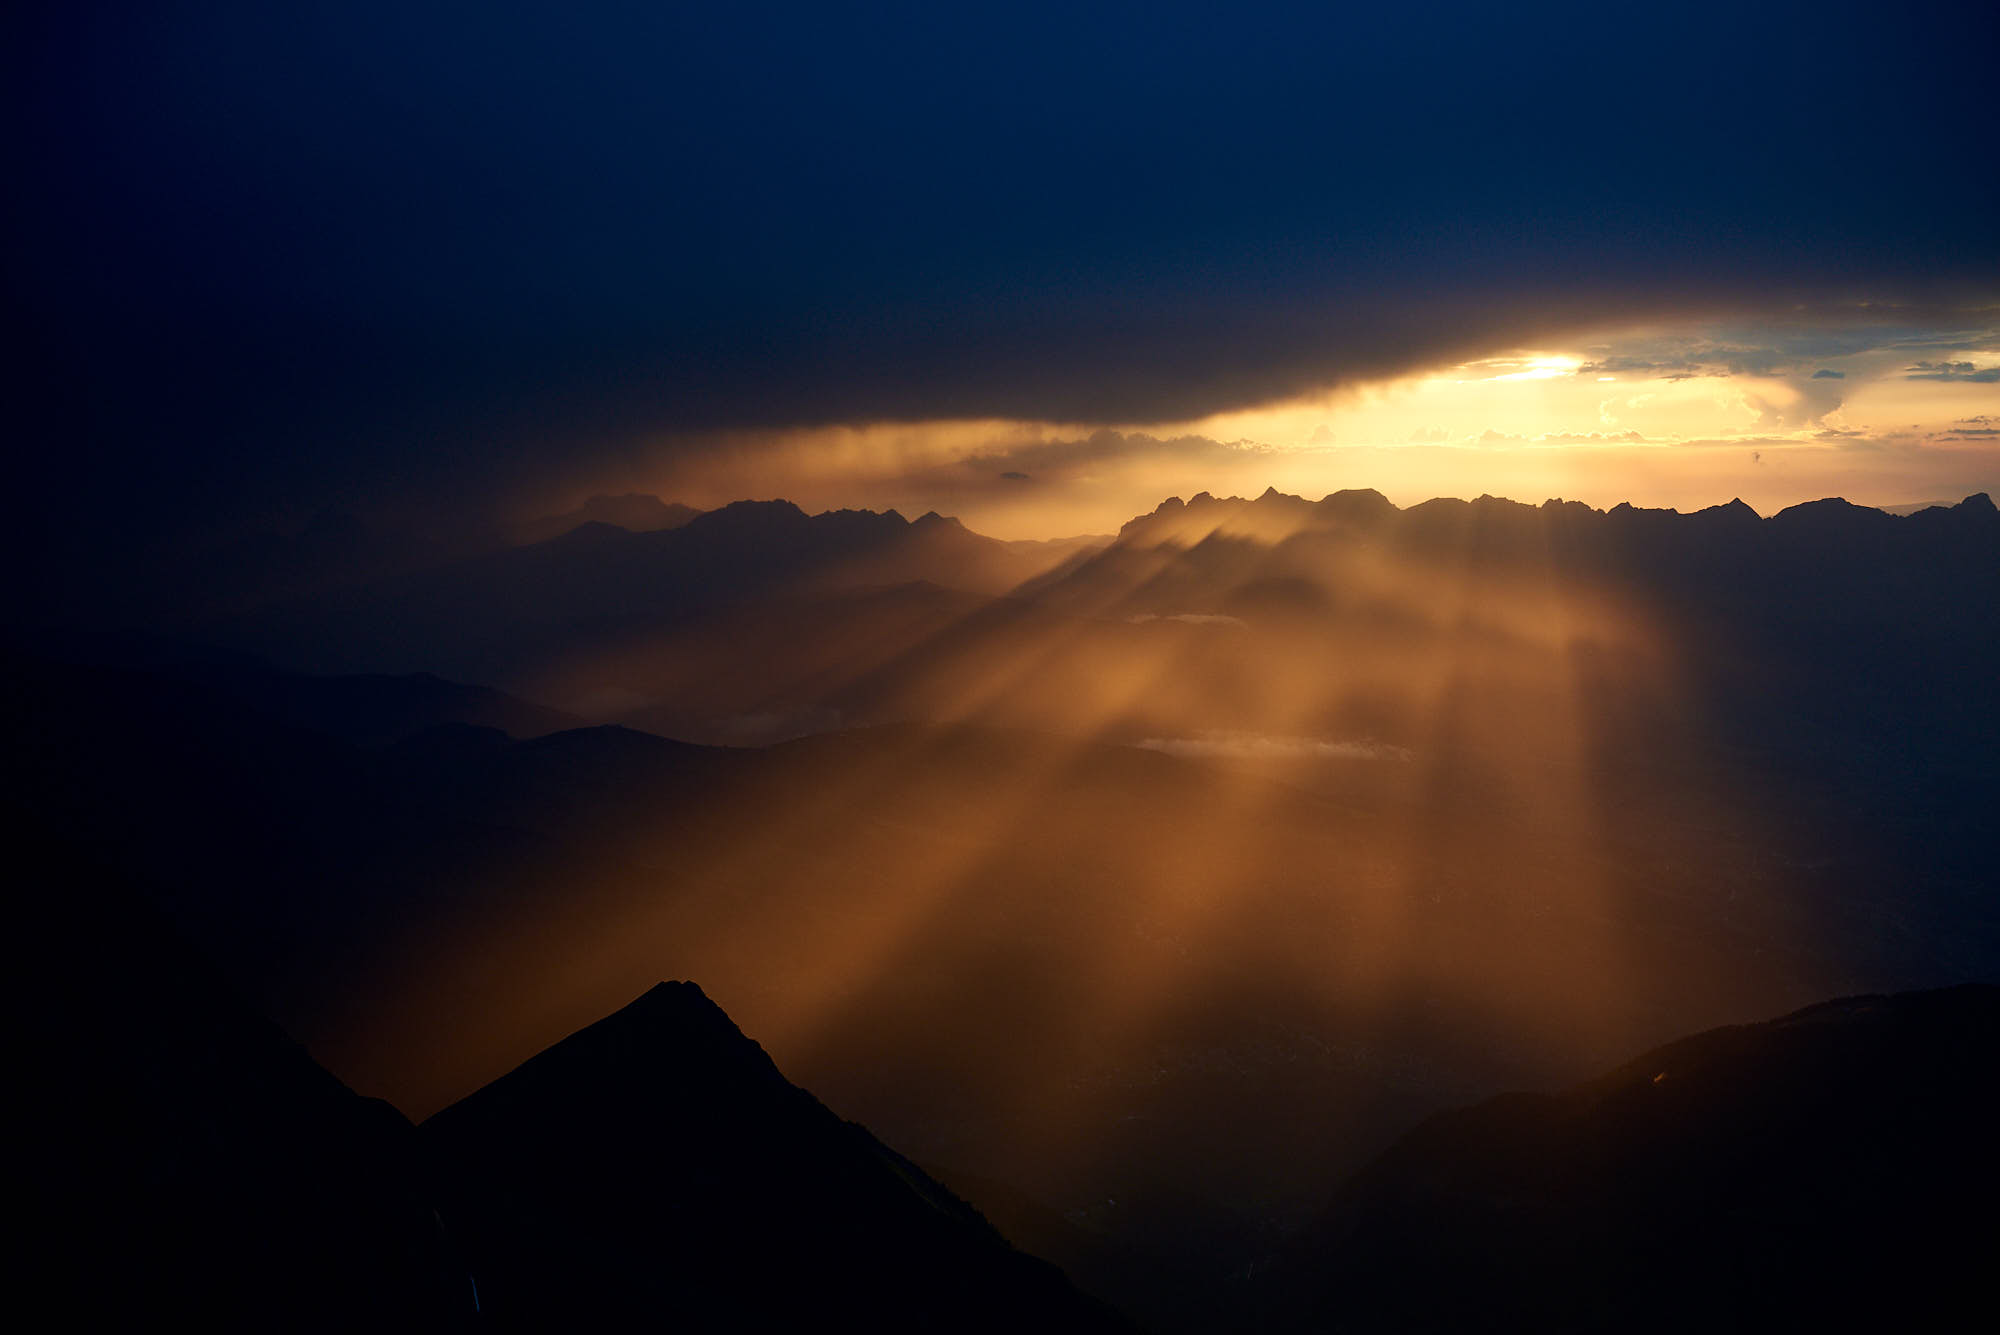 Epic sunset near Mont Blanc in France